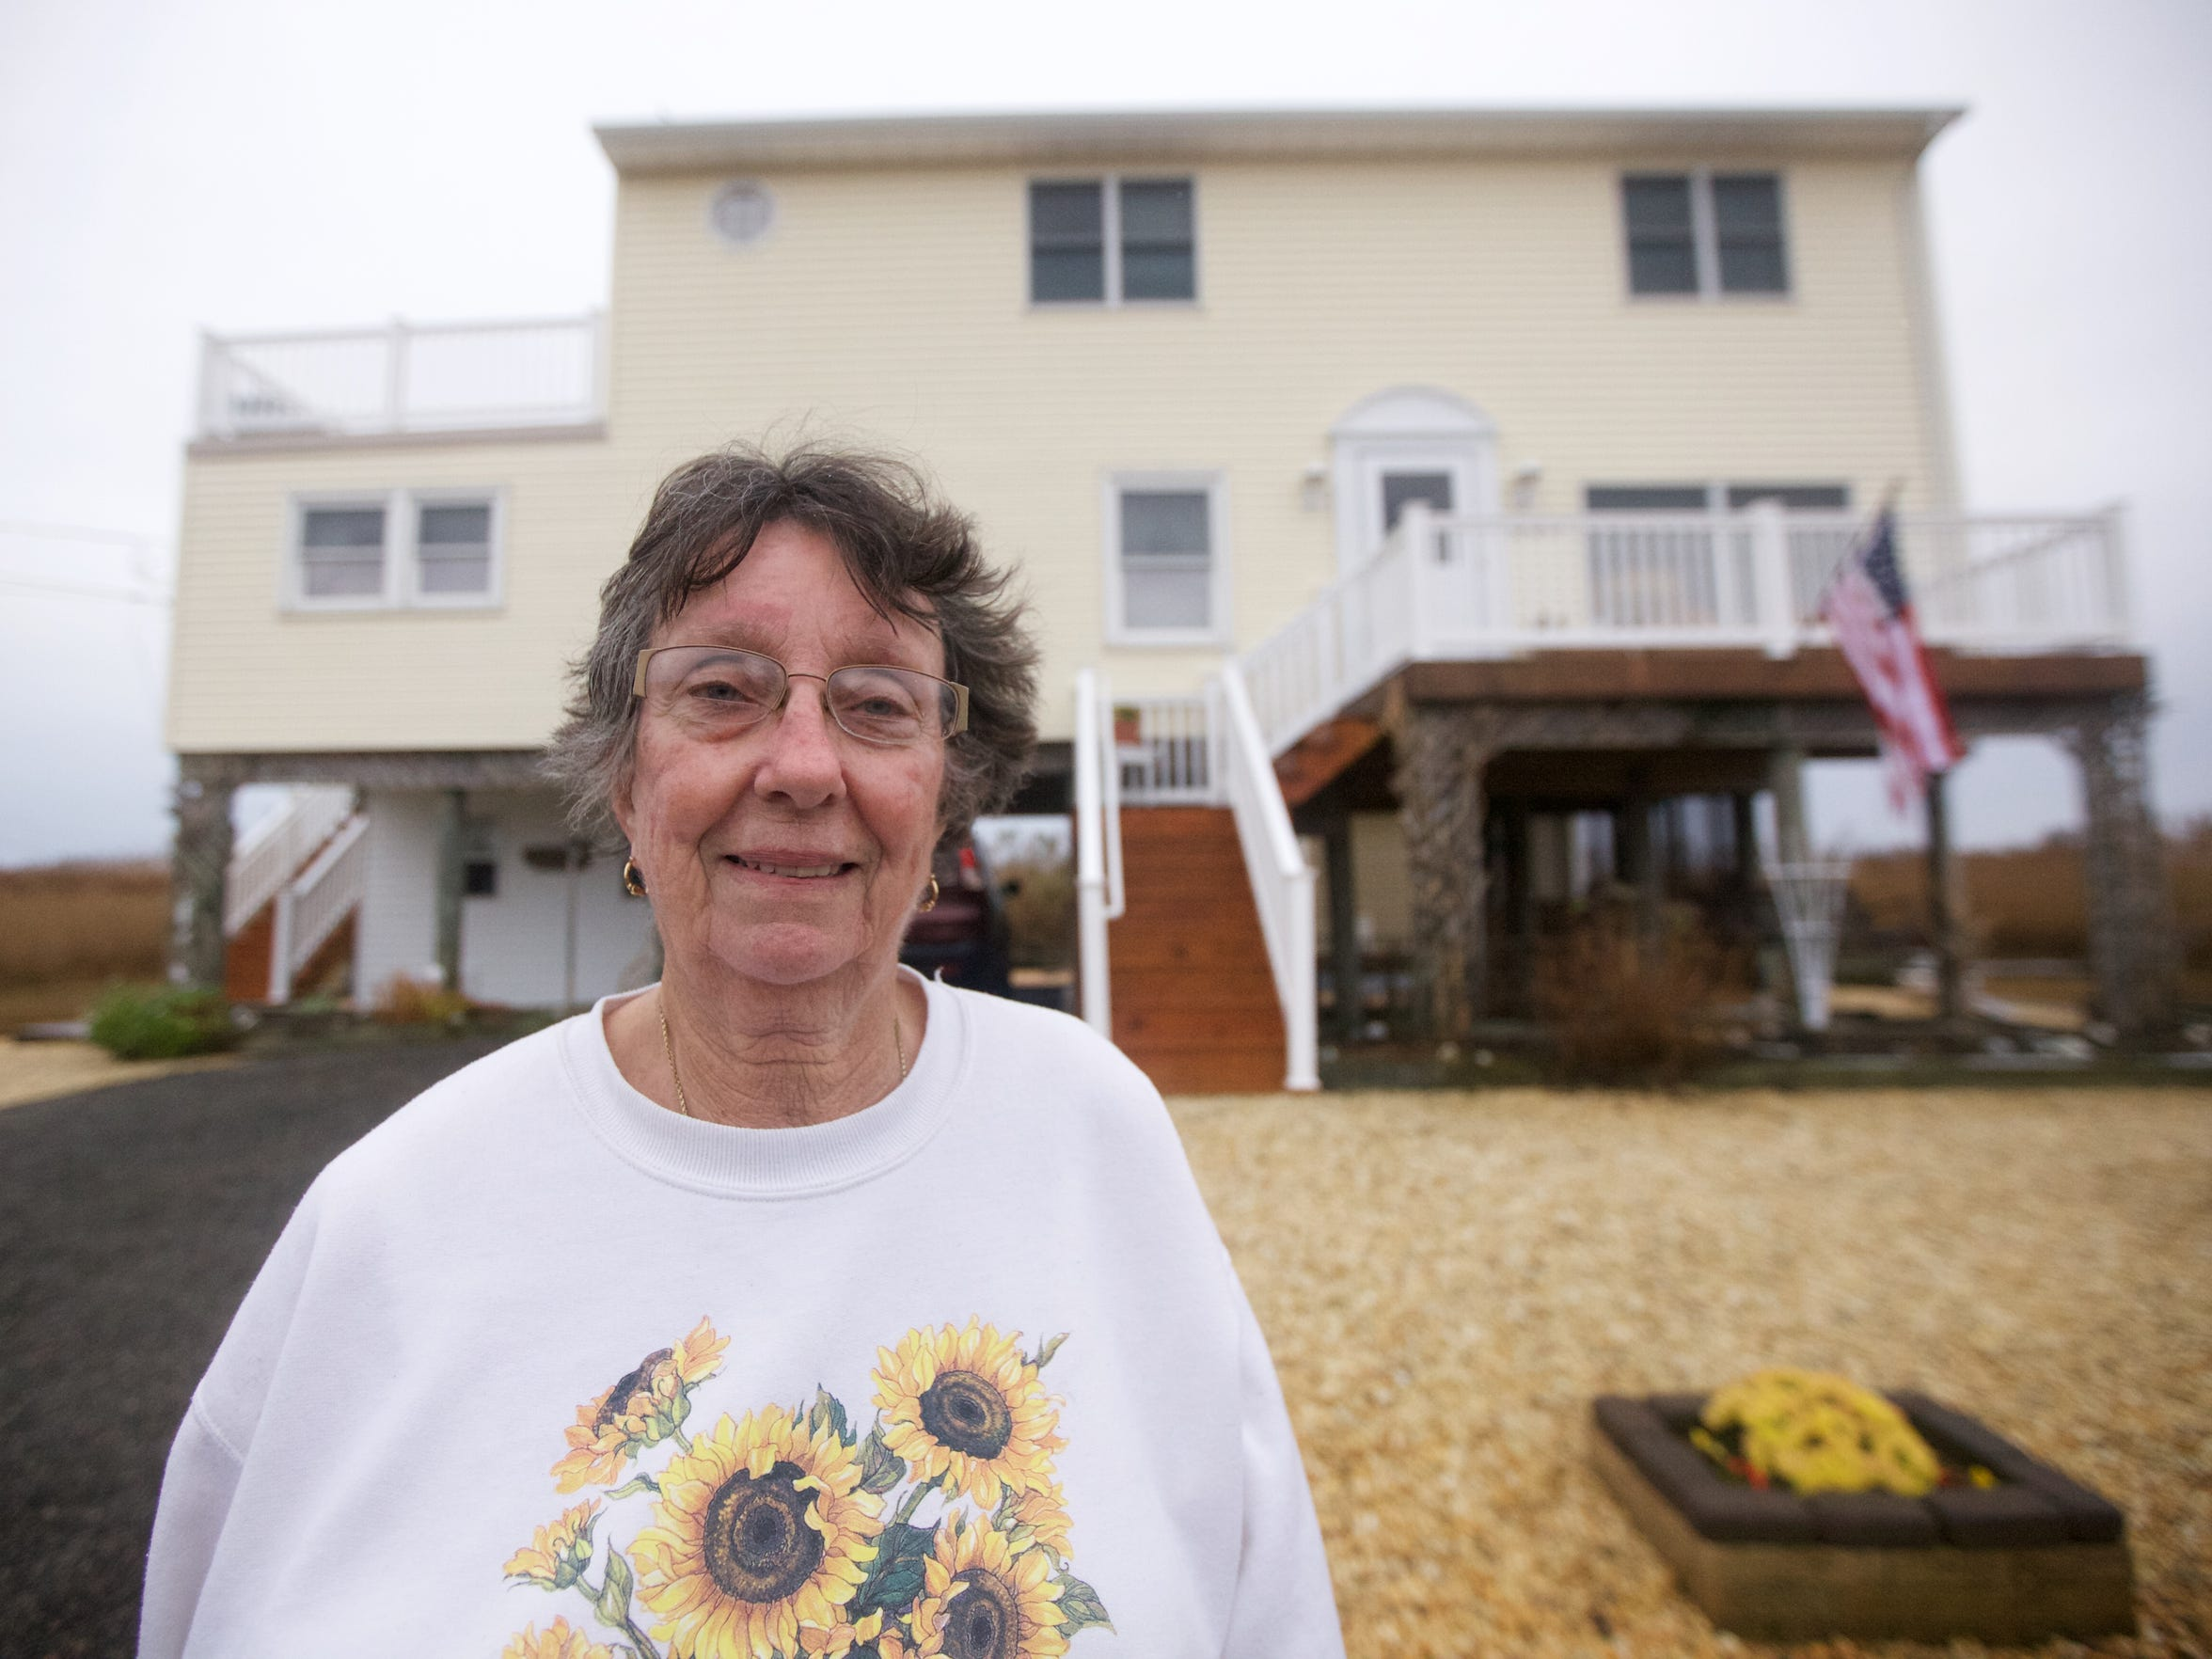 Maryann O'Neill is willing to tolerate the tides to stay in the home she loves.